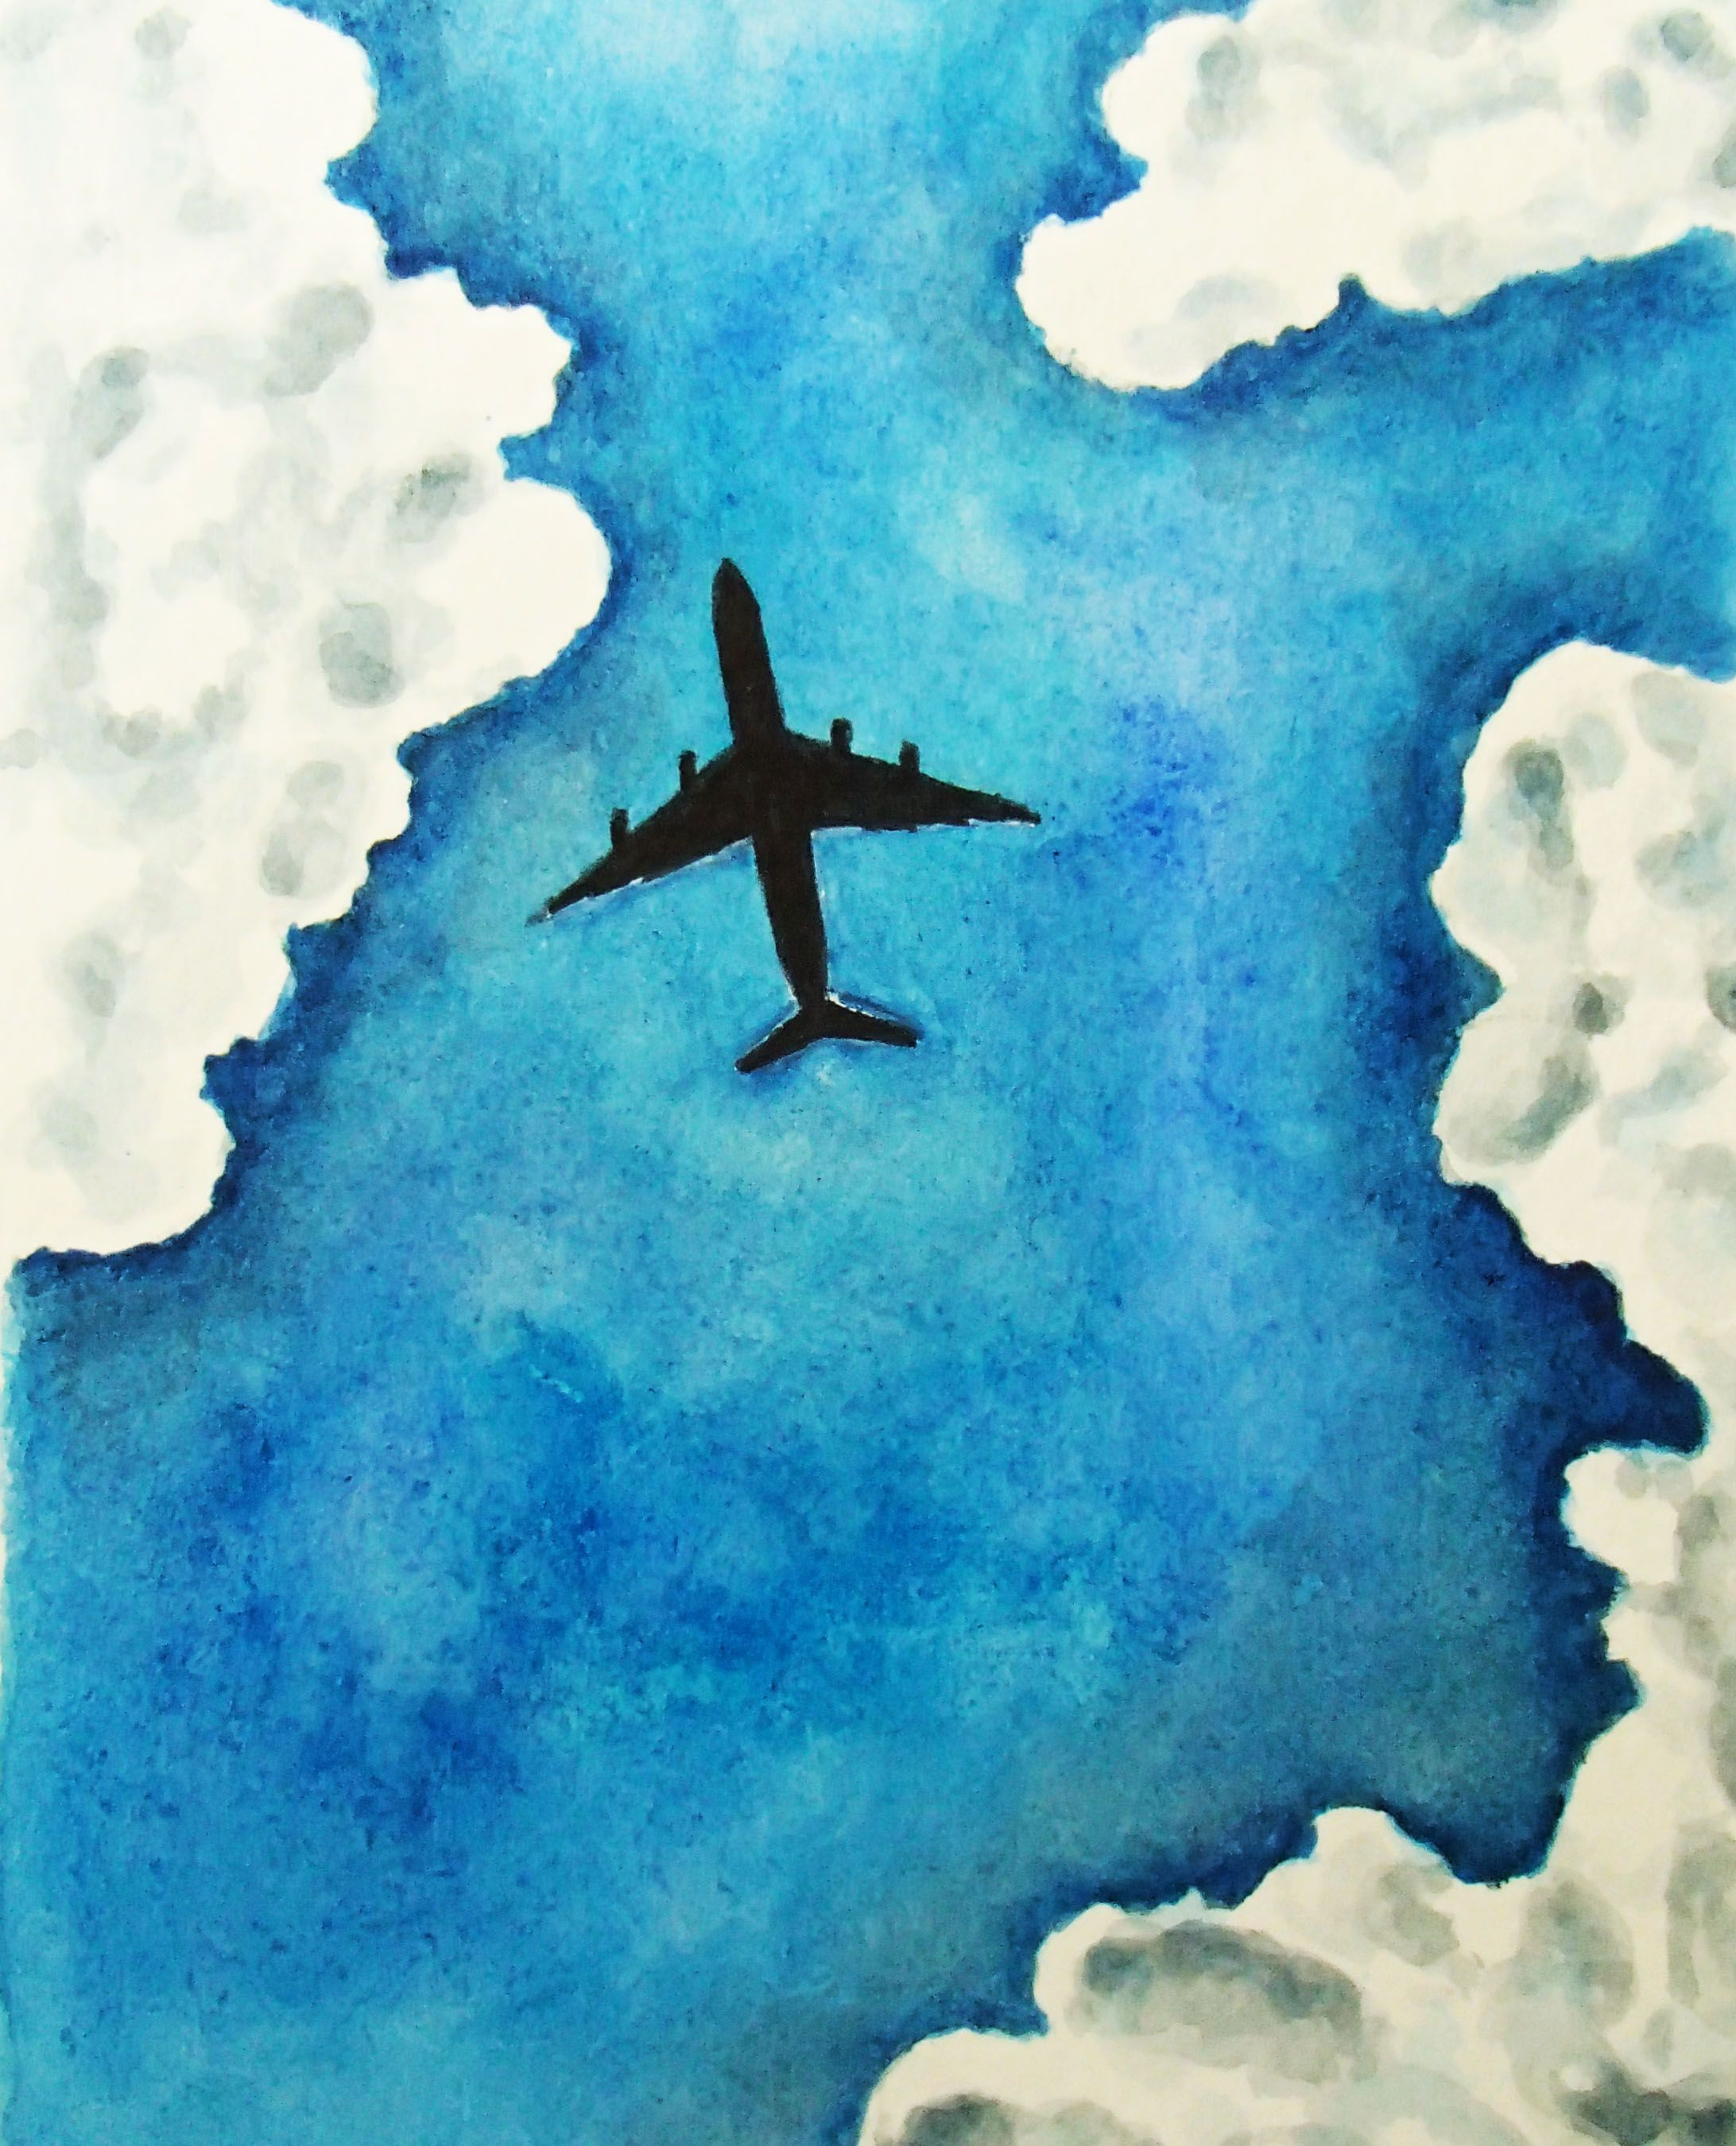 Watercolor Sky Clouds Plane With Images